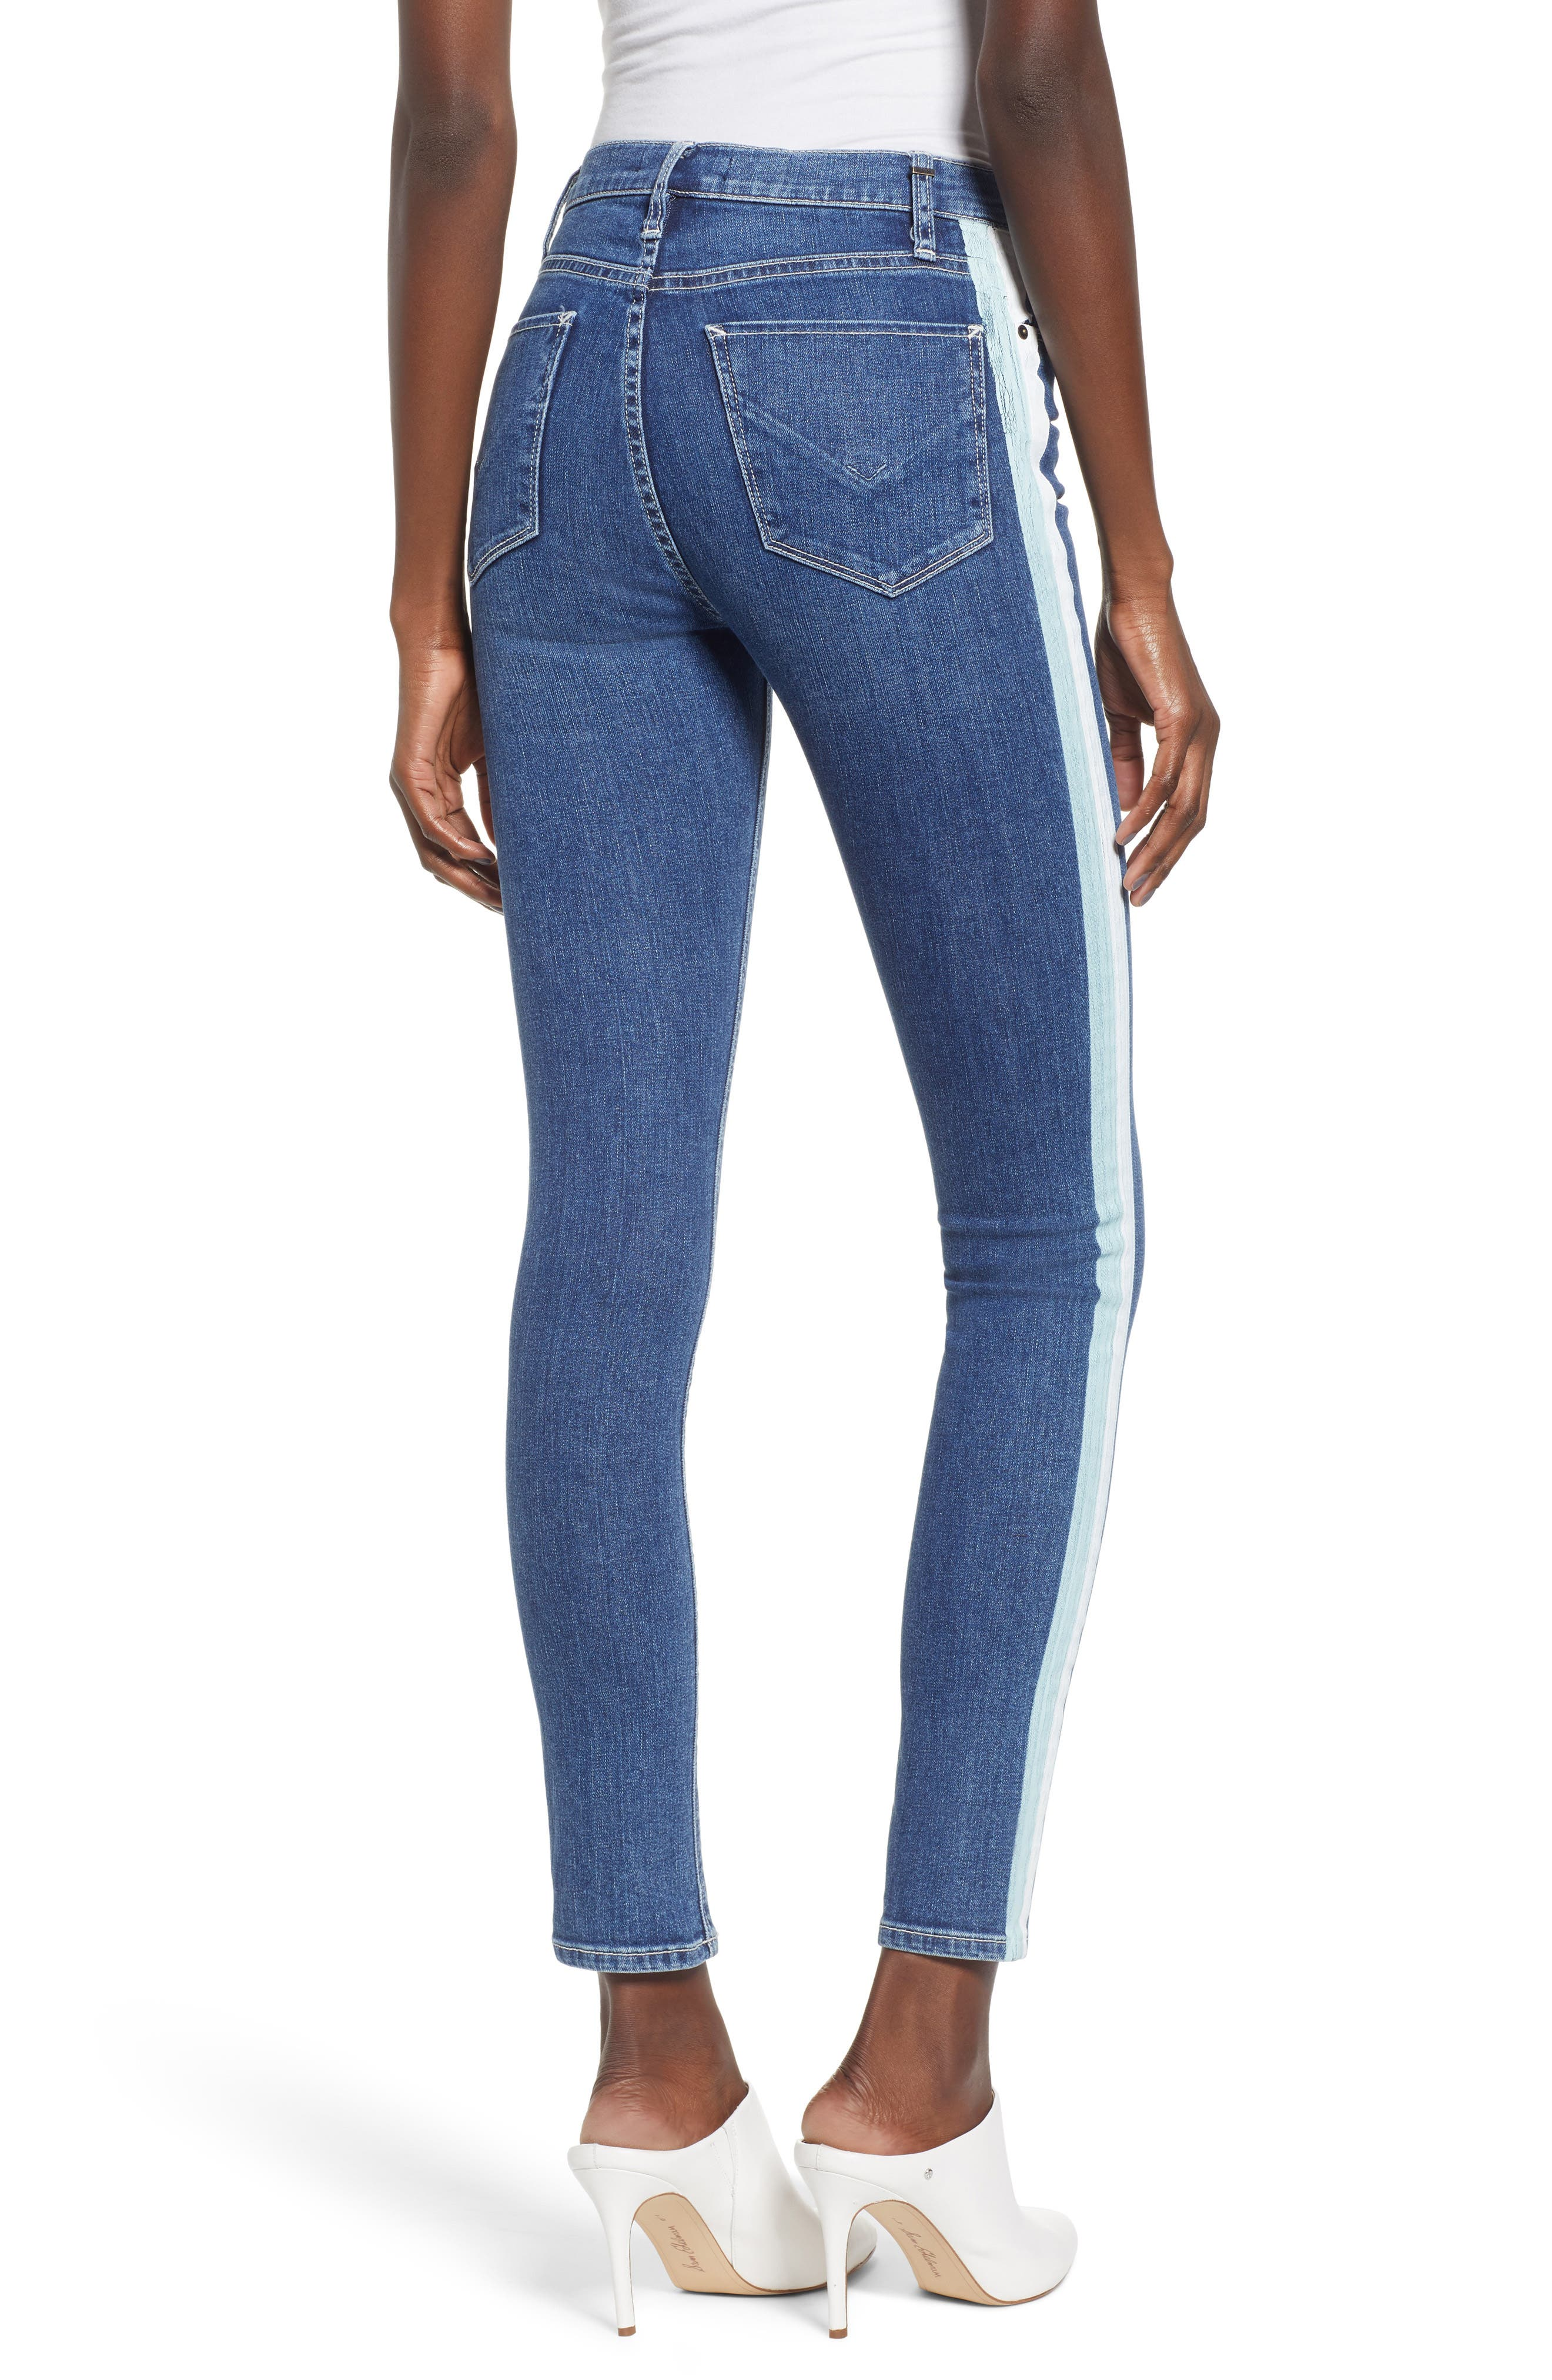 Barbara High Waist Ankle Skinny Jeans,                             Alternate thumbnail 2, color,                             403